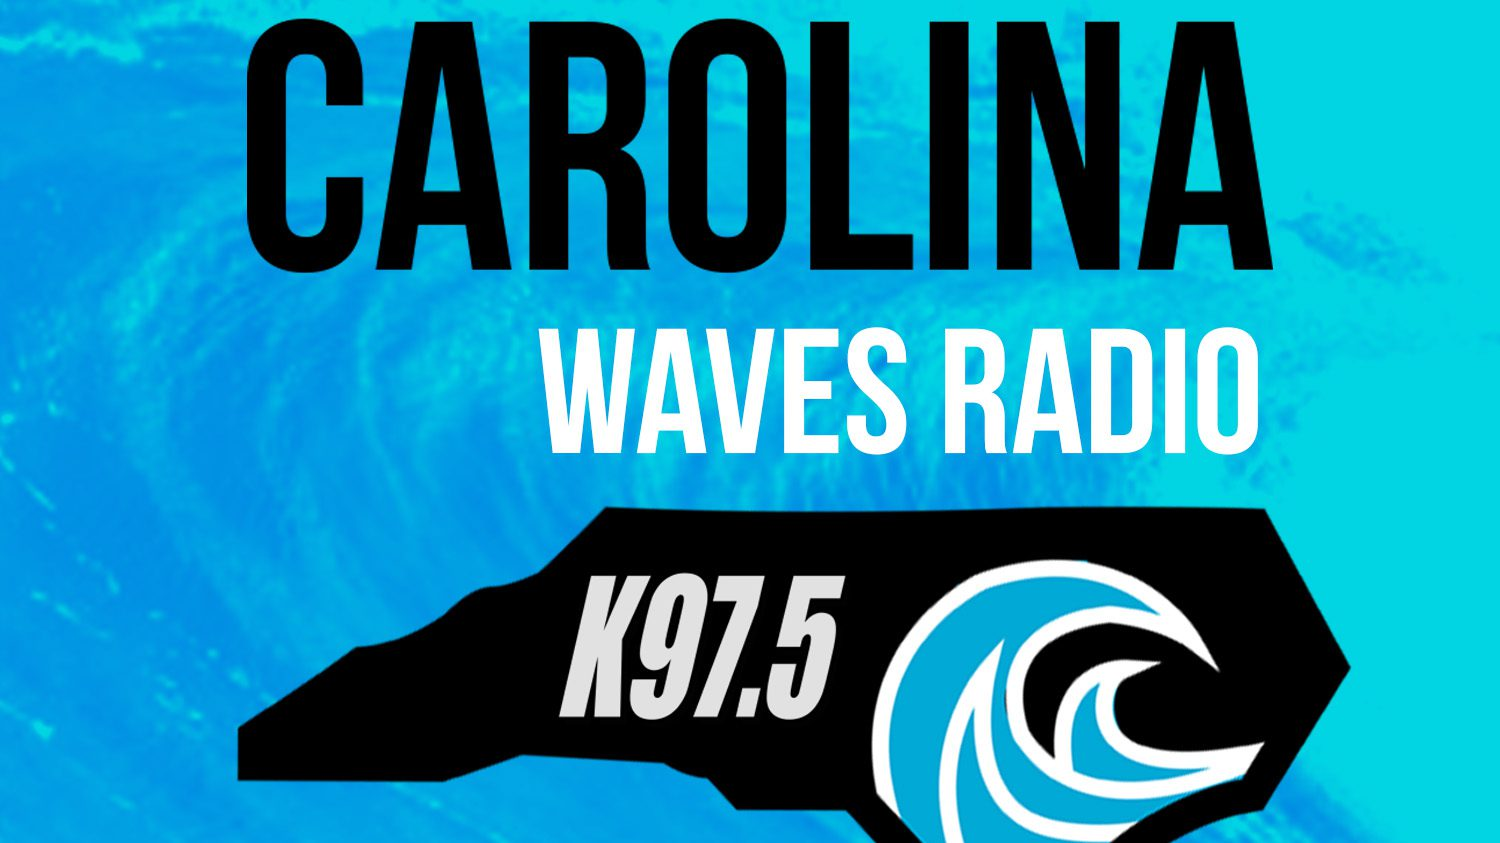 Carolina Waves Radio